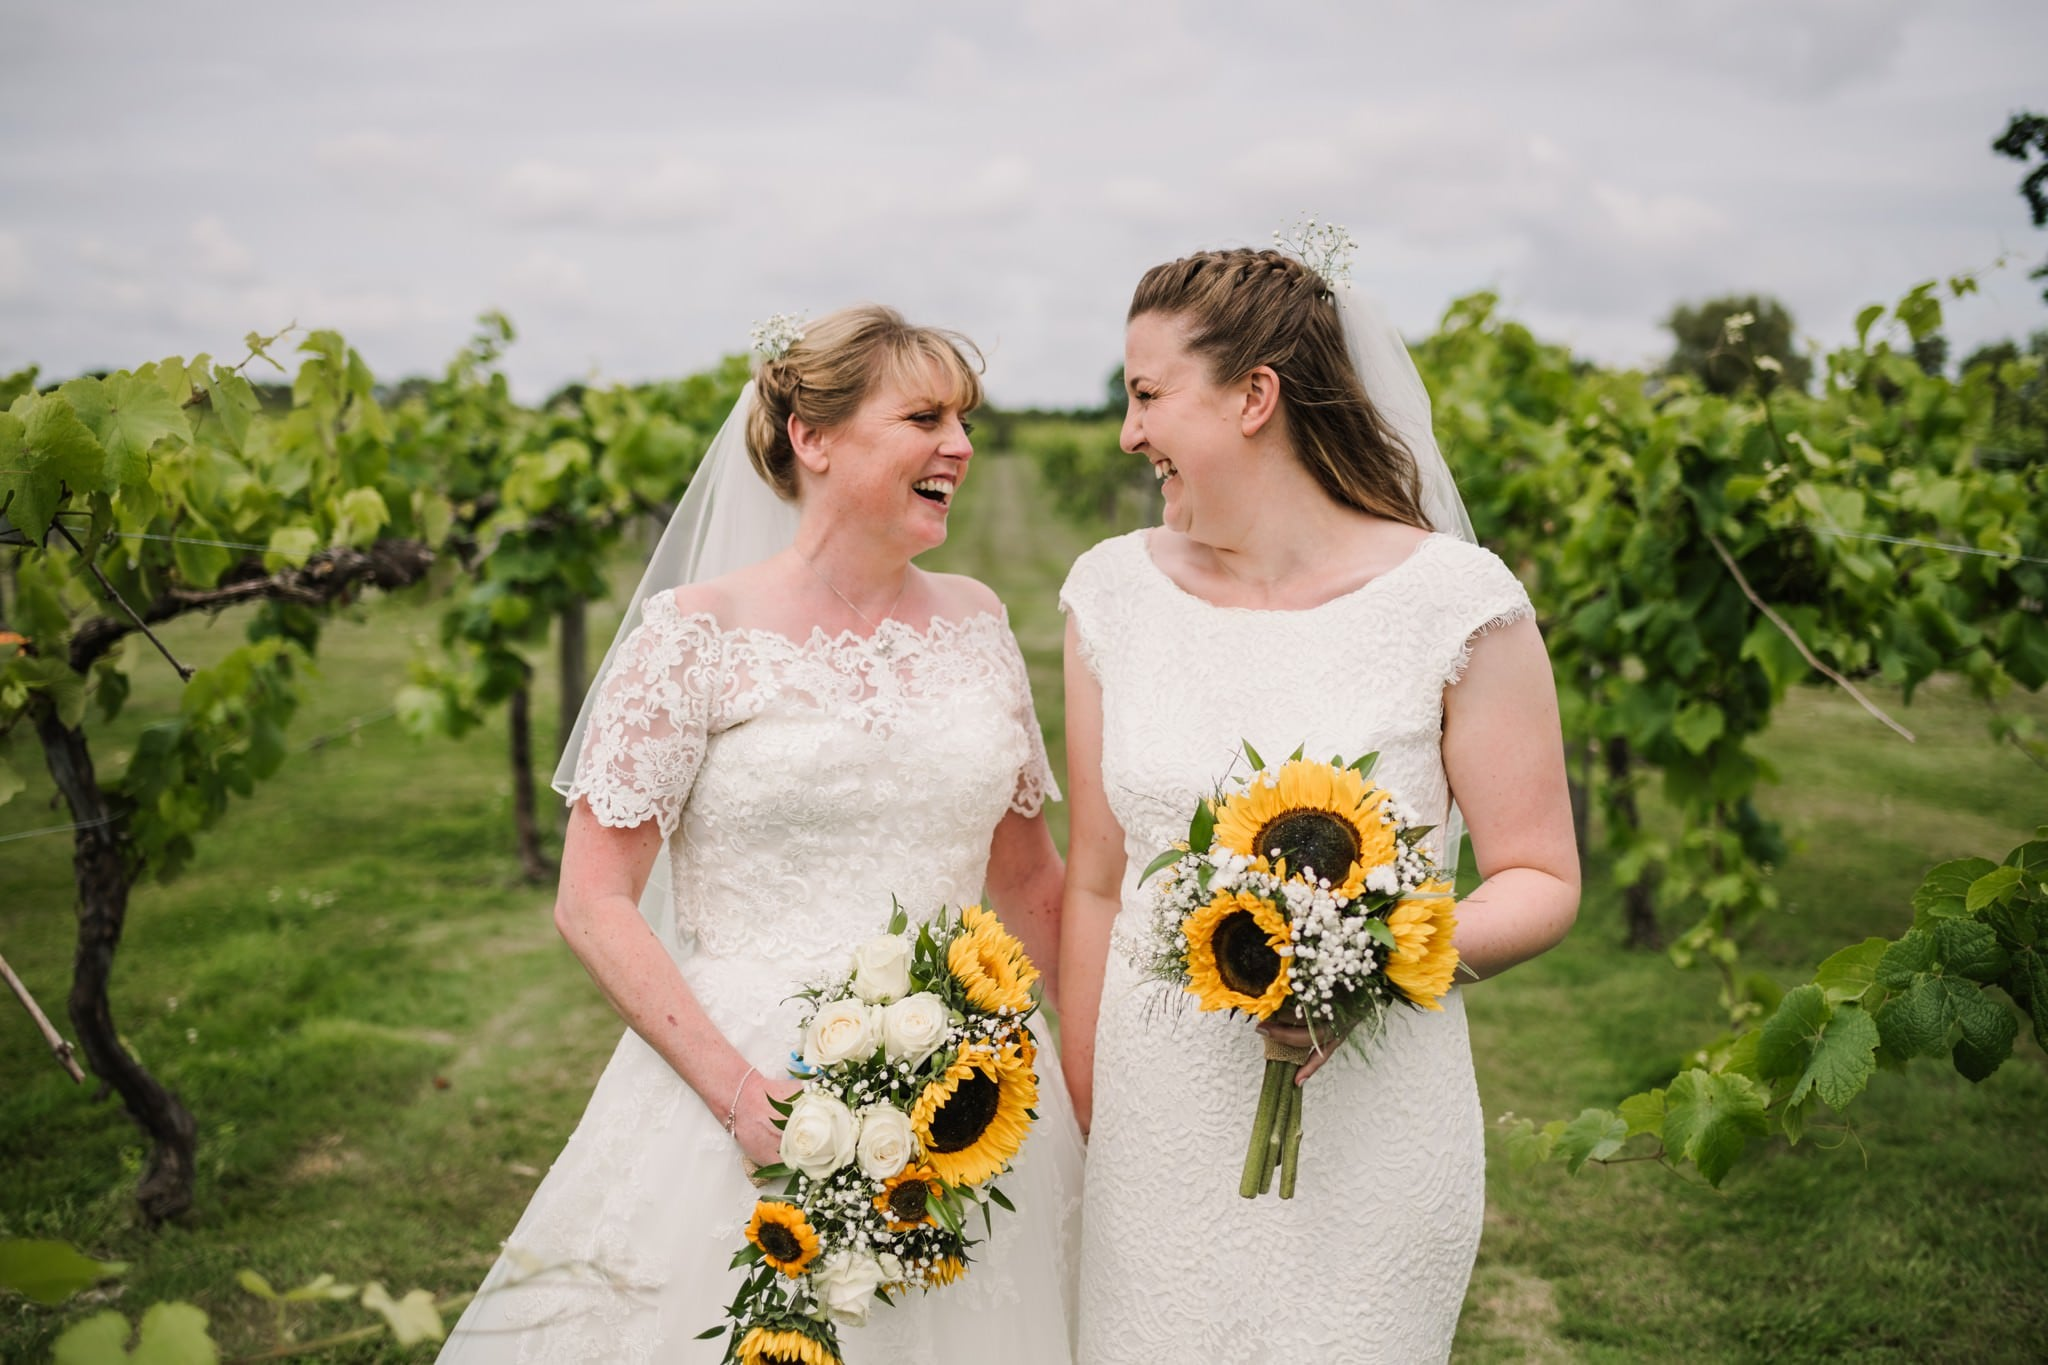 Lesbian brides at Three Choirs Vineyard wedding